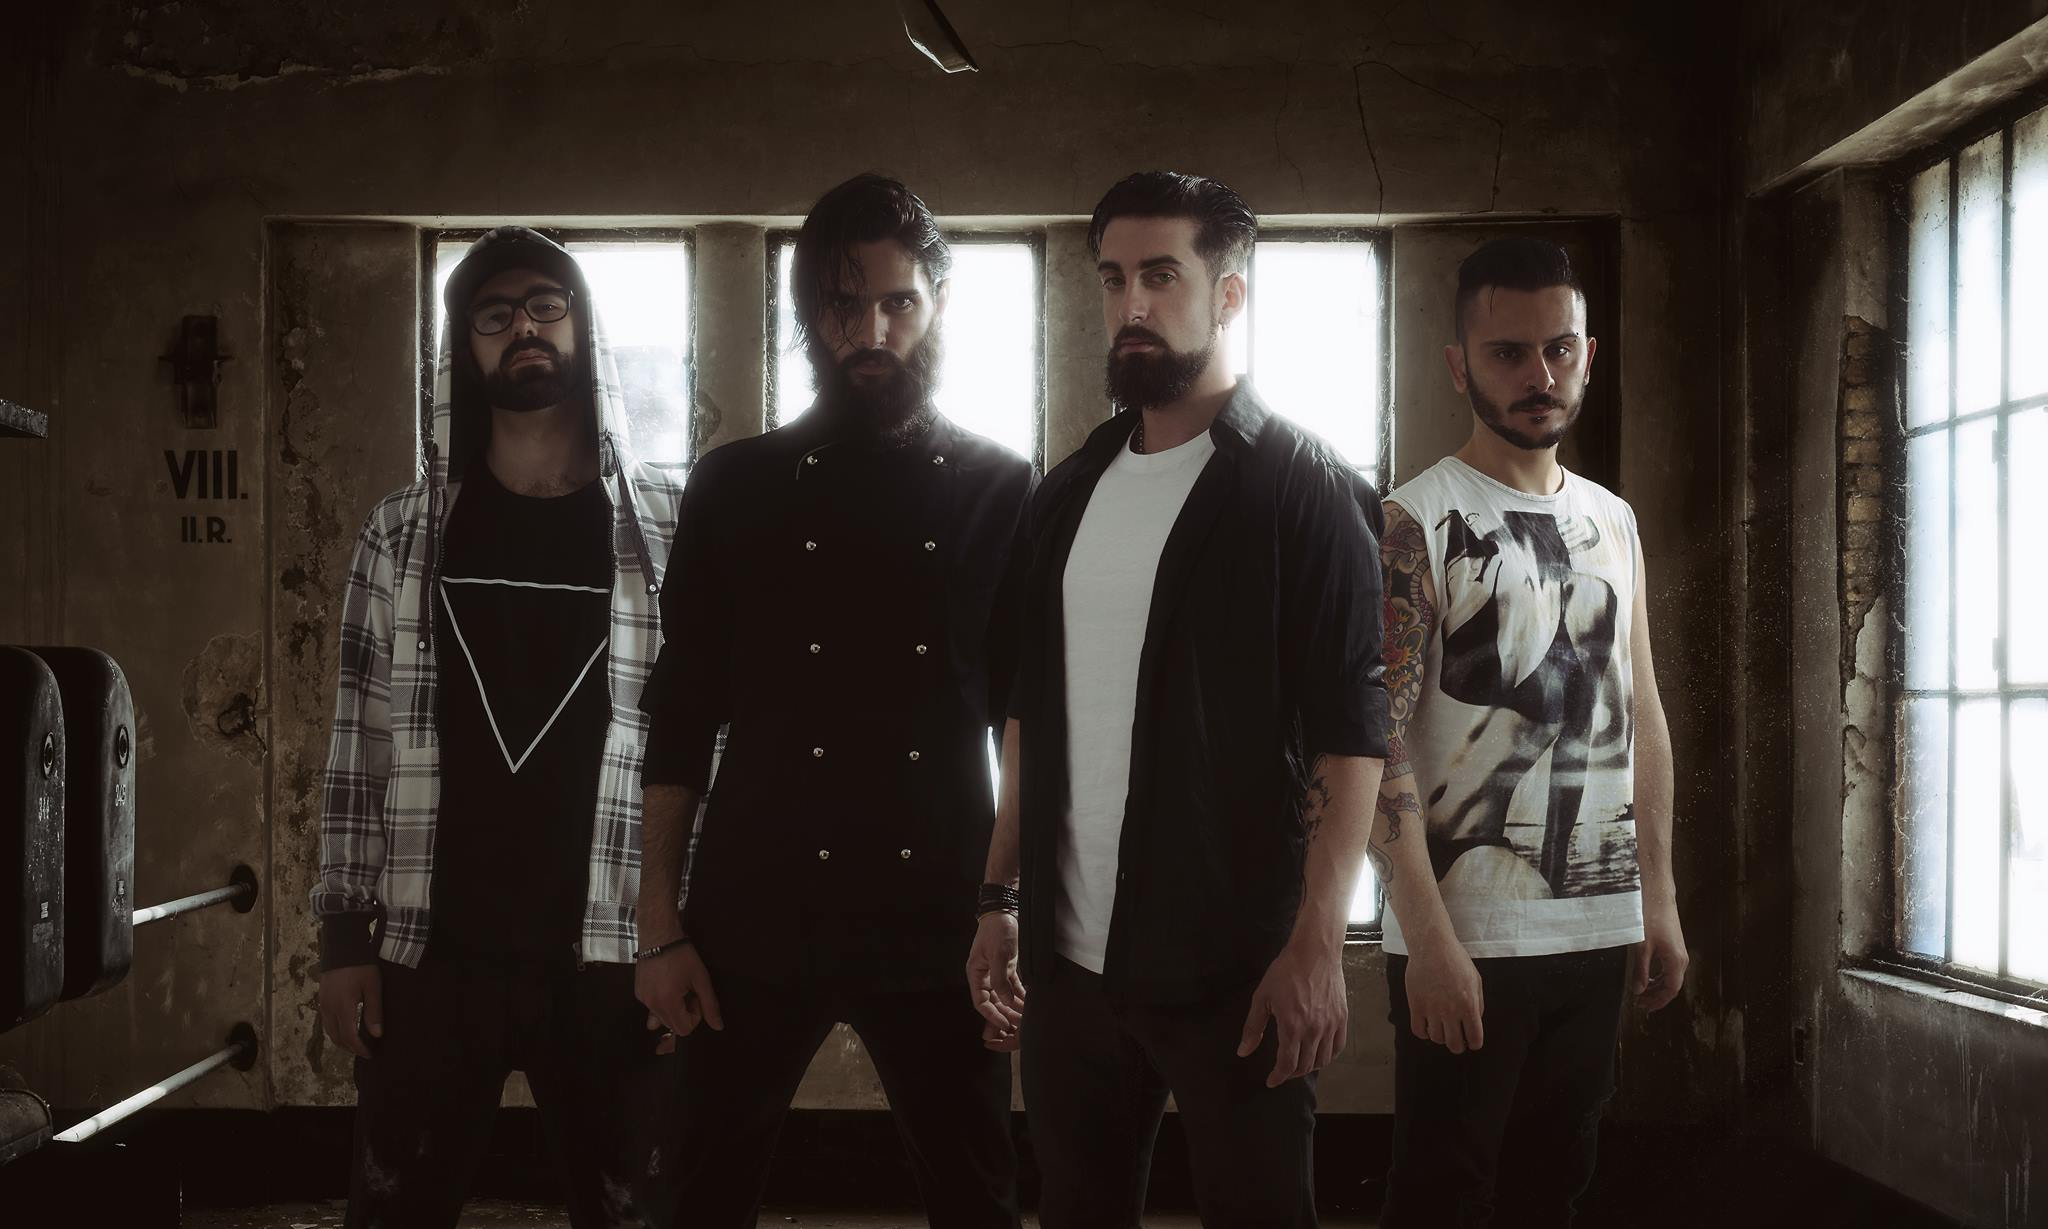 L'alternative rock band nuorese 'Awake for days' sbarca negli Usa